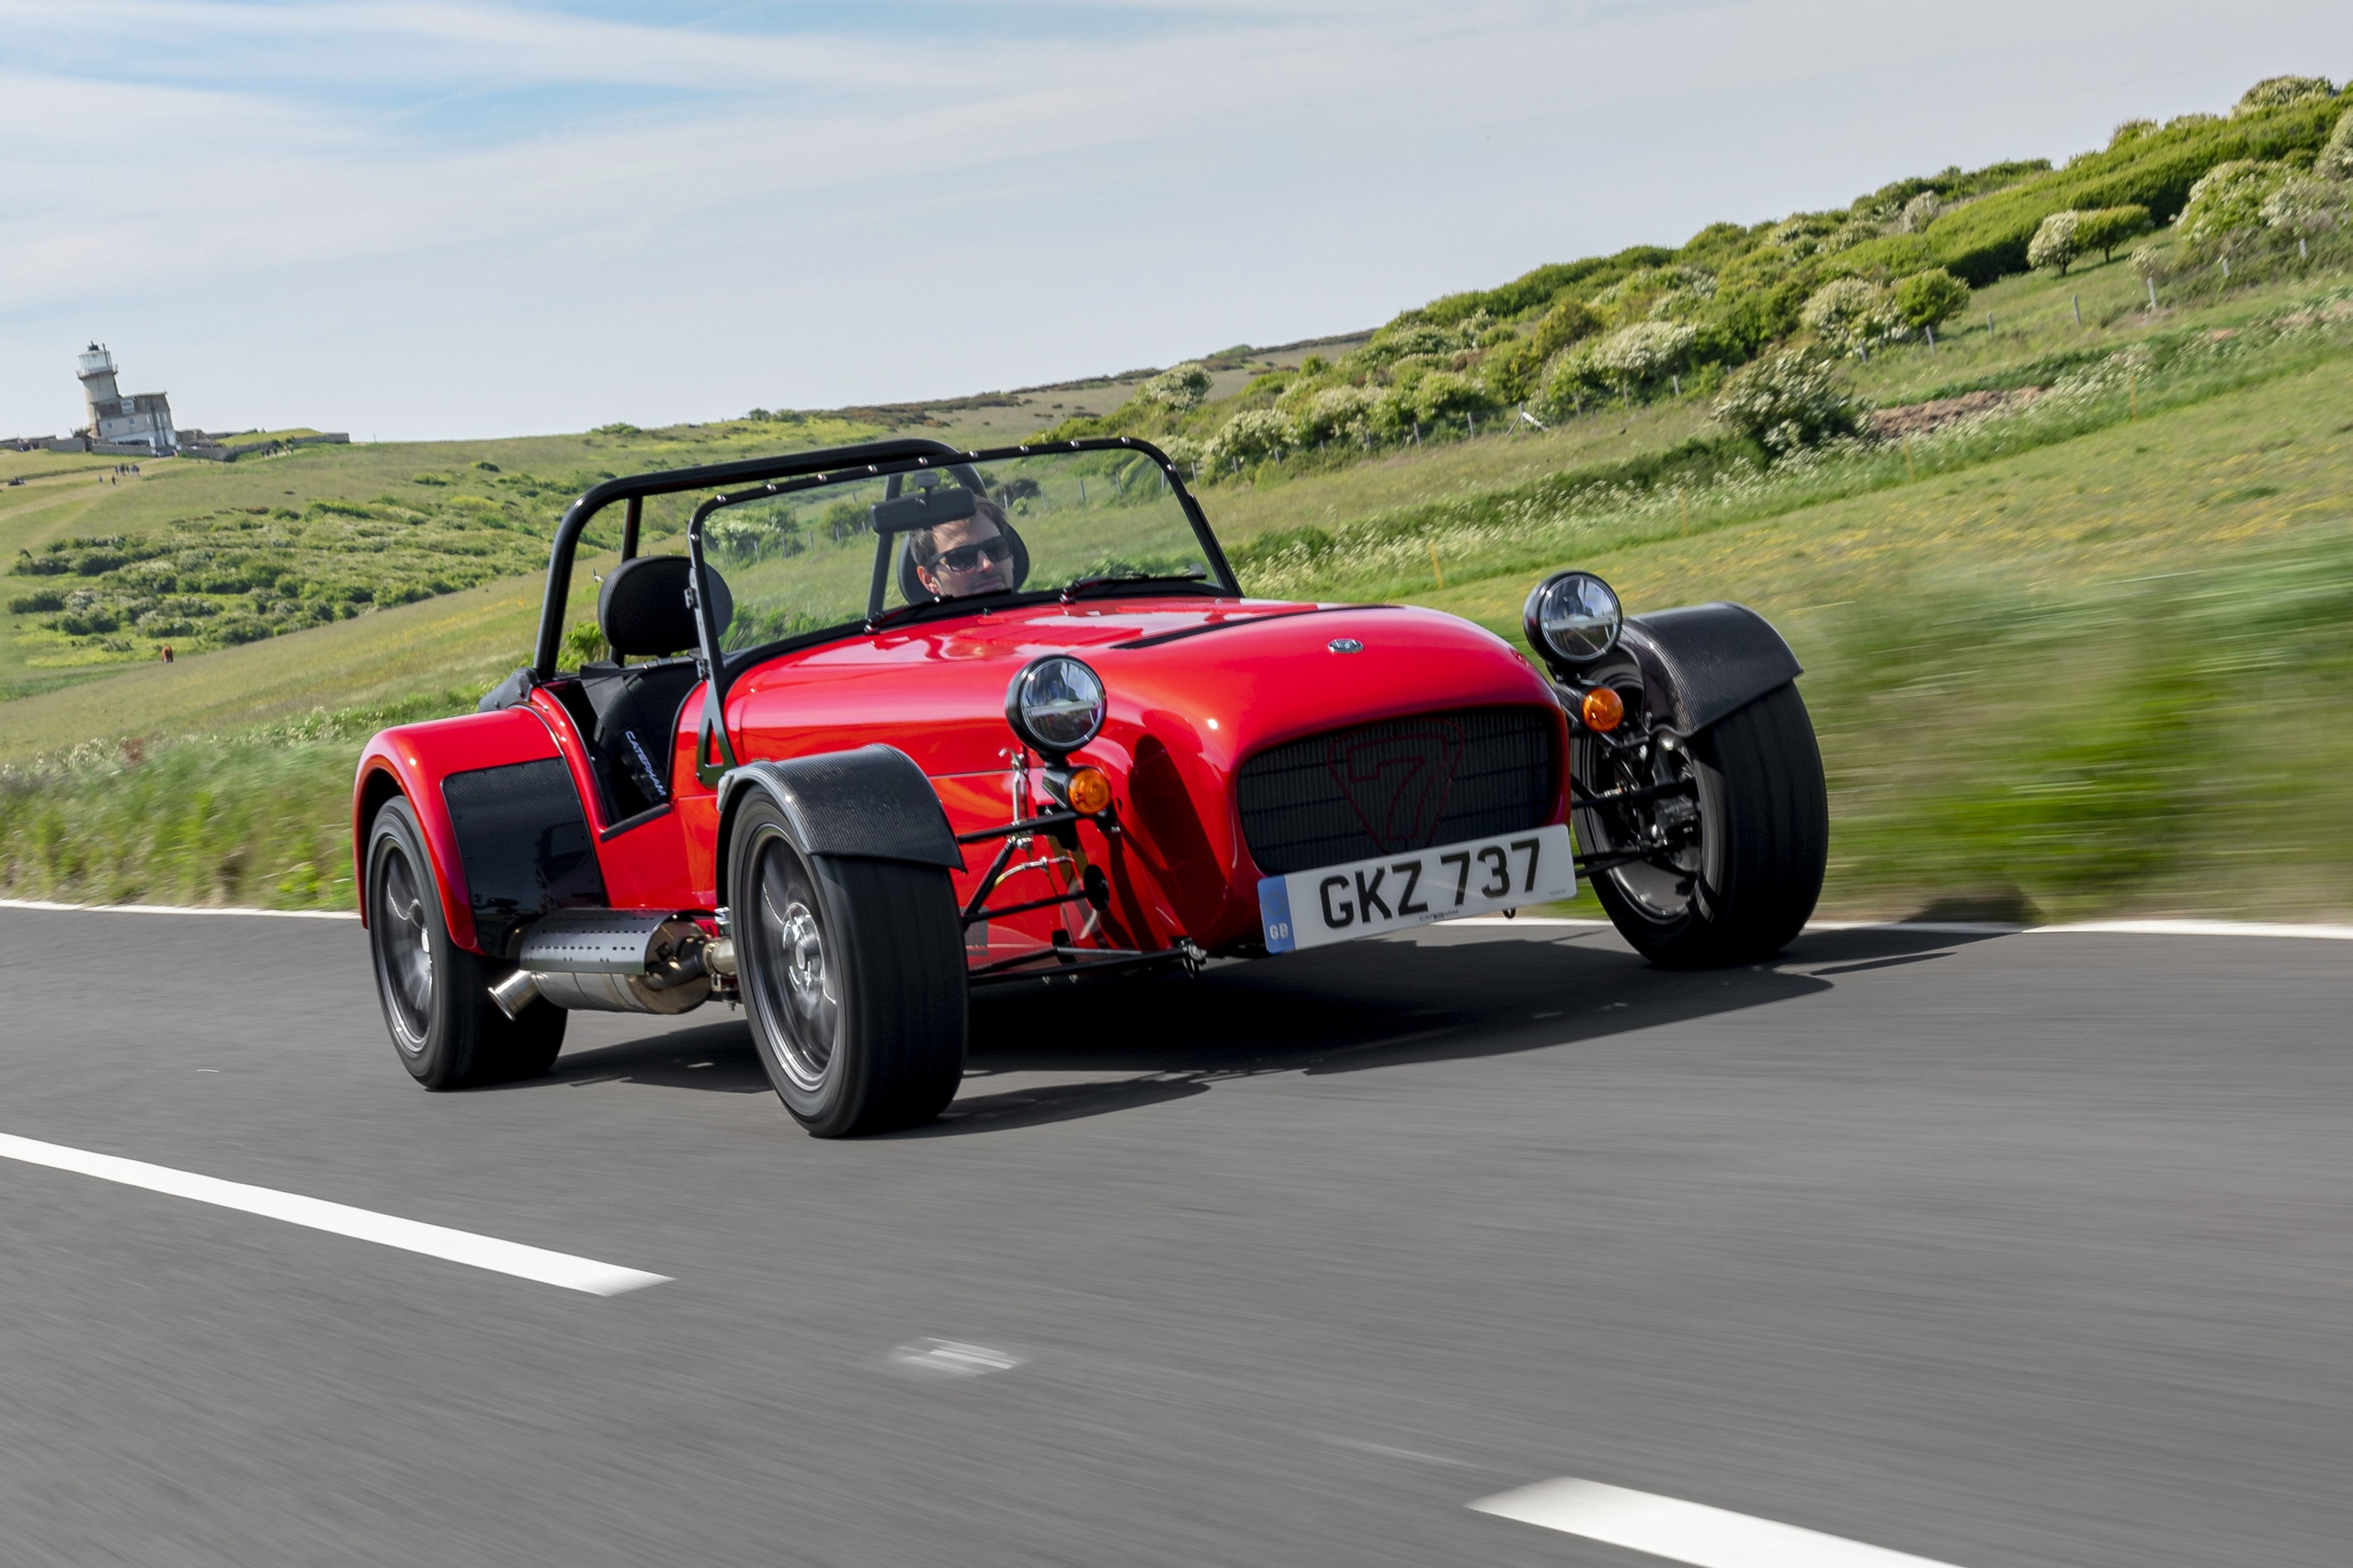 Caterham-485-CSR-®-Photo-Max-Earey-122